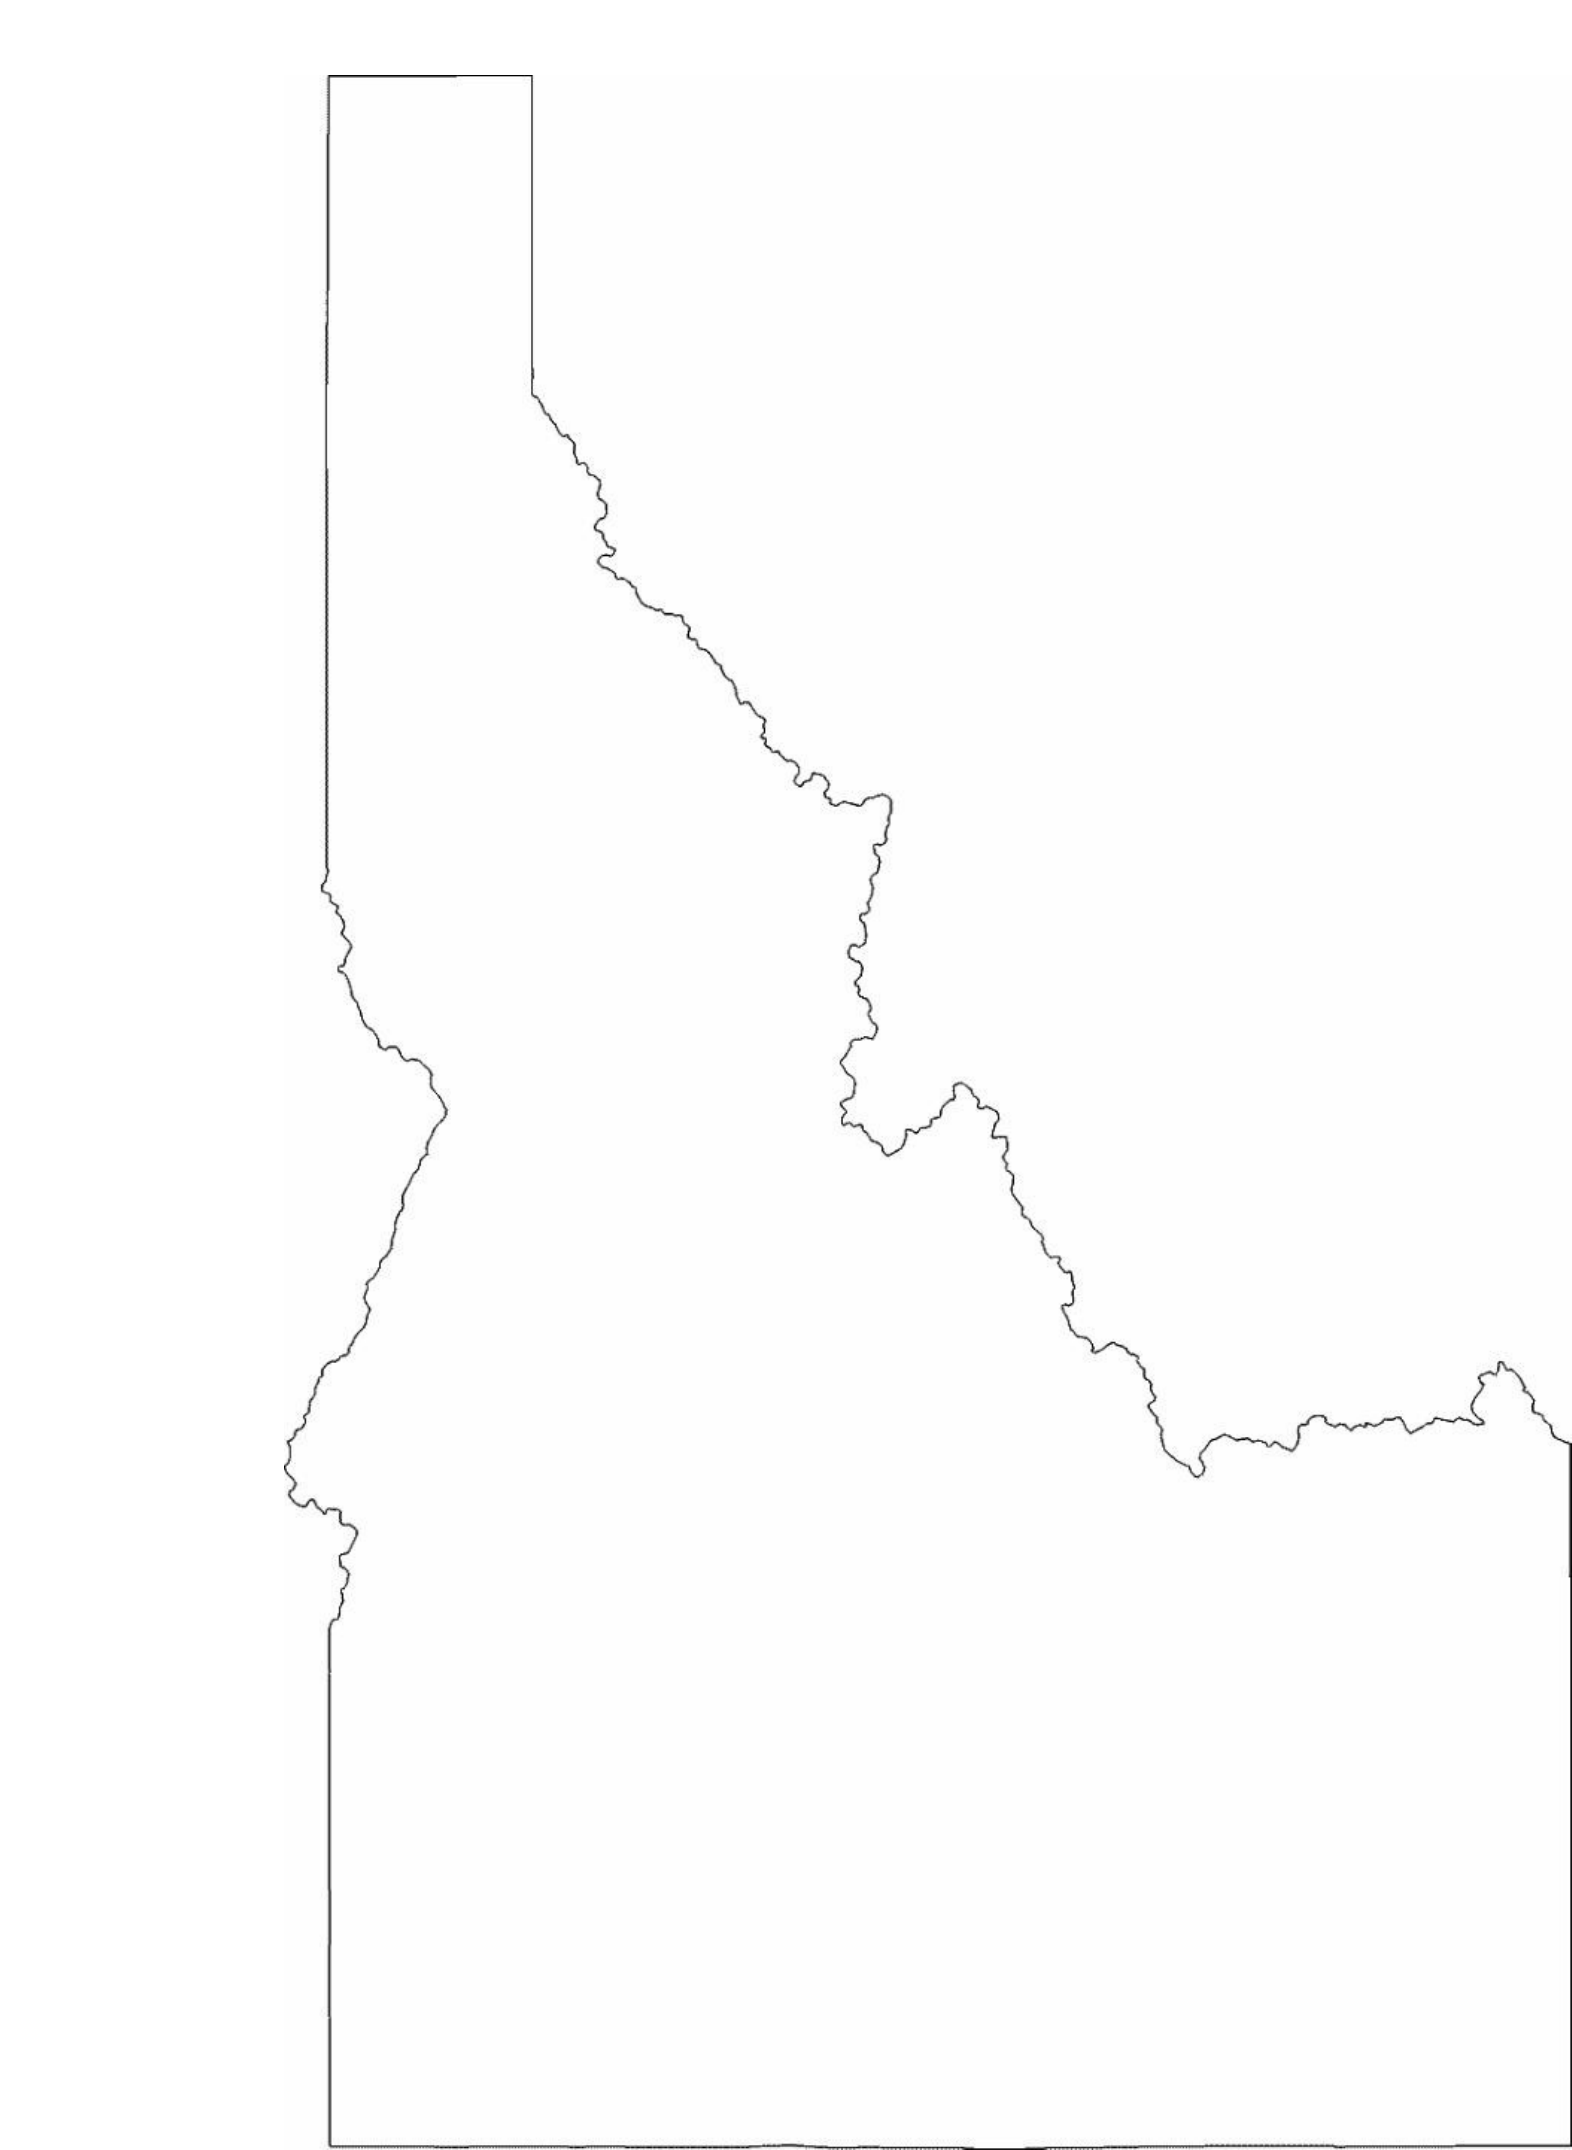 Idaho State Outline Map Free Download